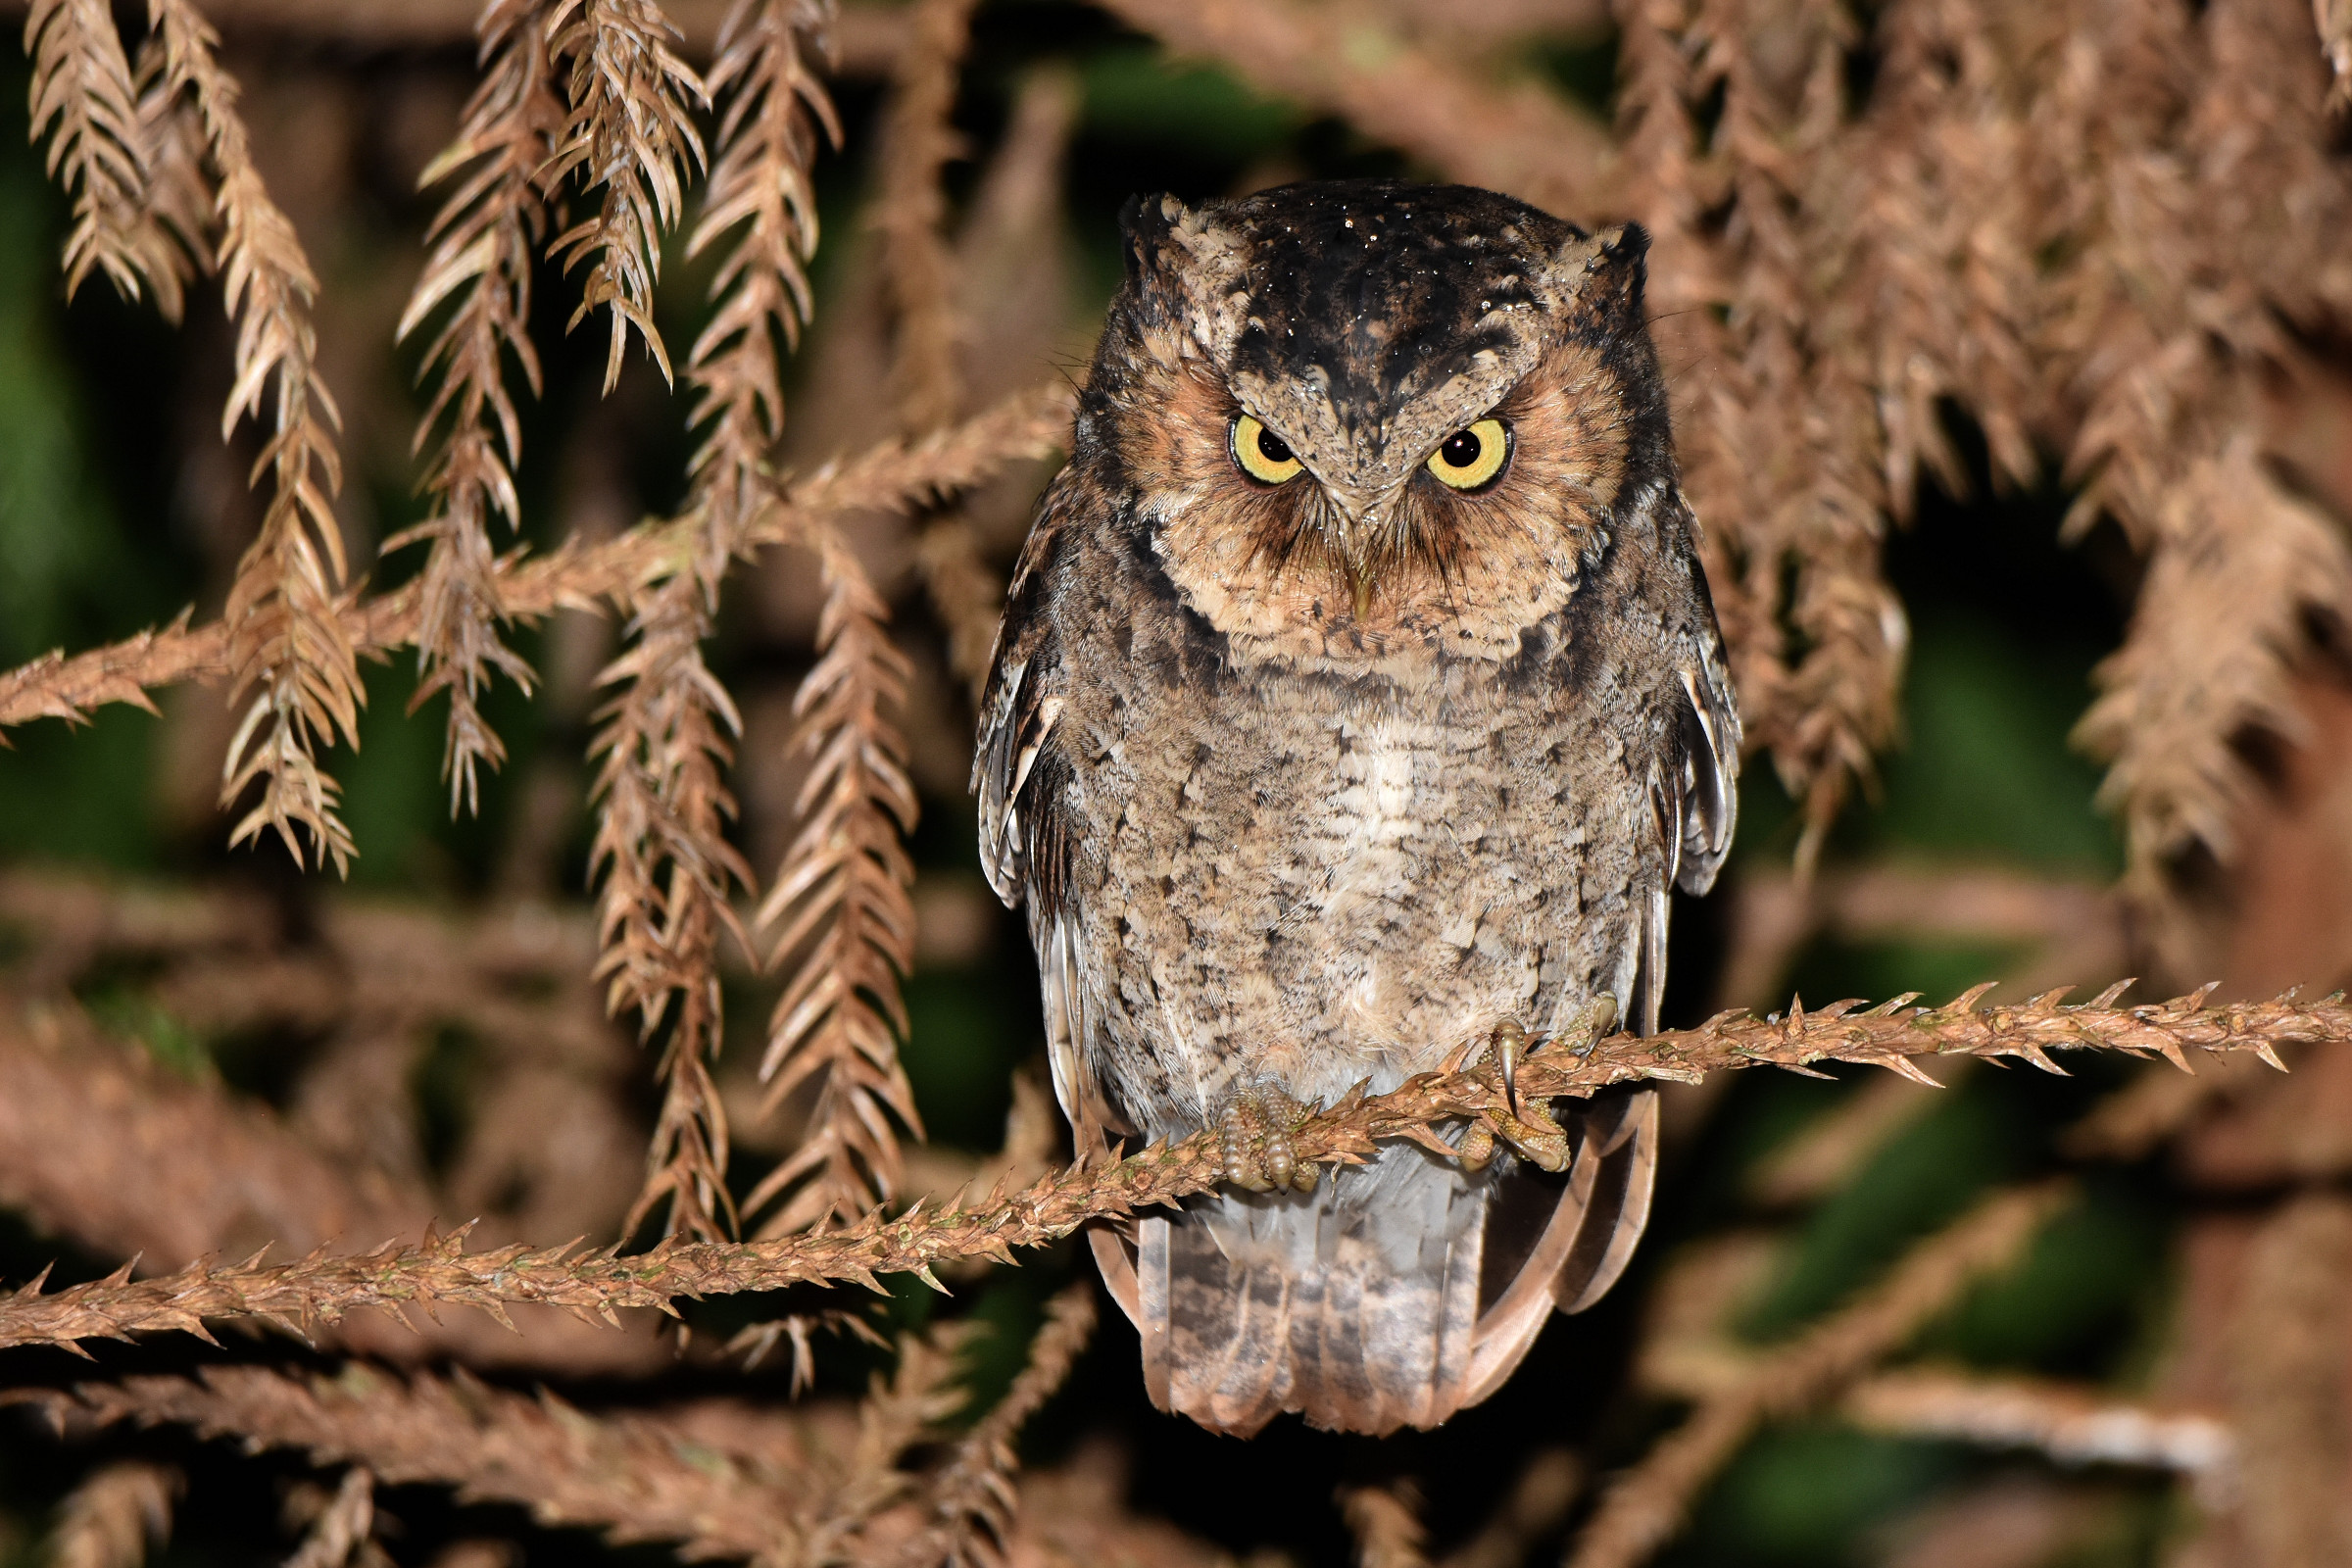 Mountain_Scops_Owl_6421-2400